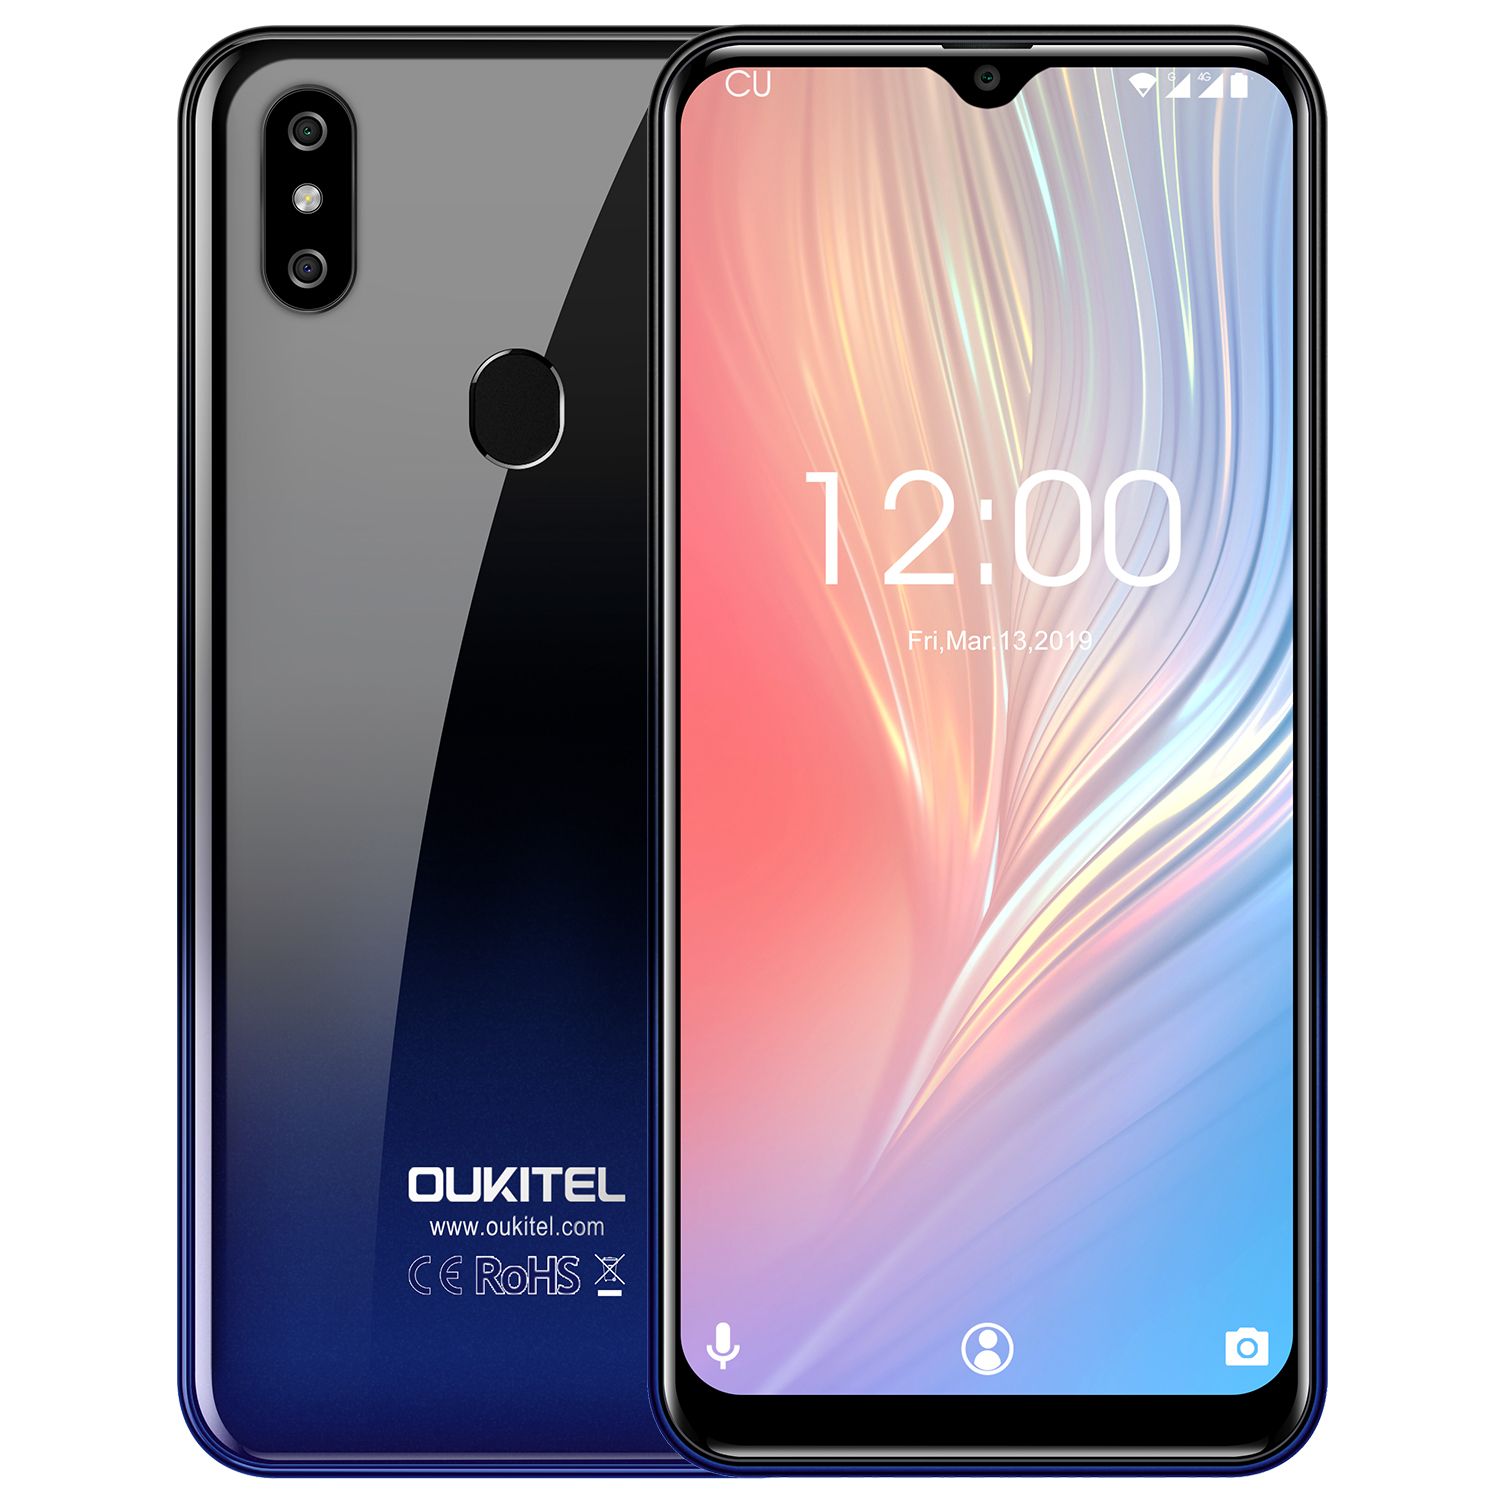 OUKITEL C15 Pro+ 6.088'' 19:9 Android 9.0 Pie 3GB 32GB MT6761 Waterdrop Smartphone Fingerprint Face ID 5G WiFi 4G Mobile Phone